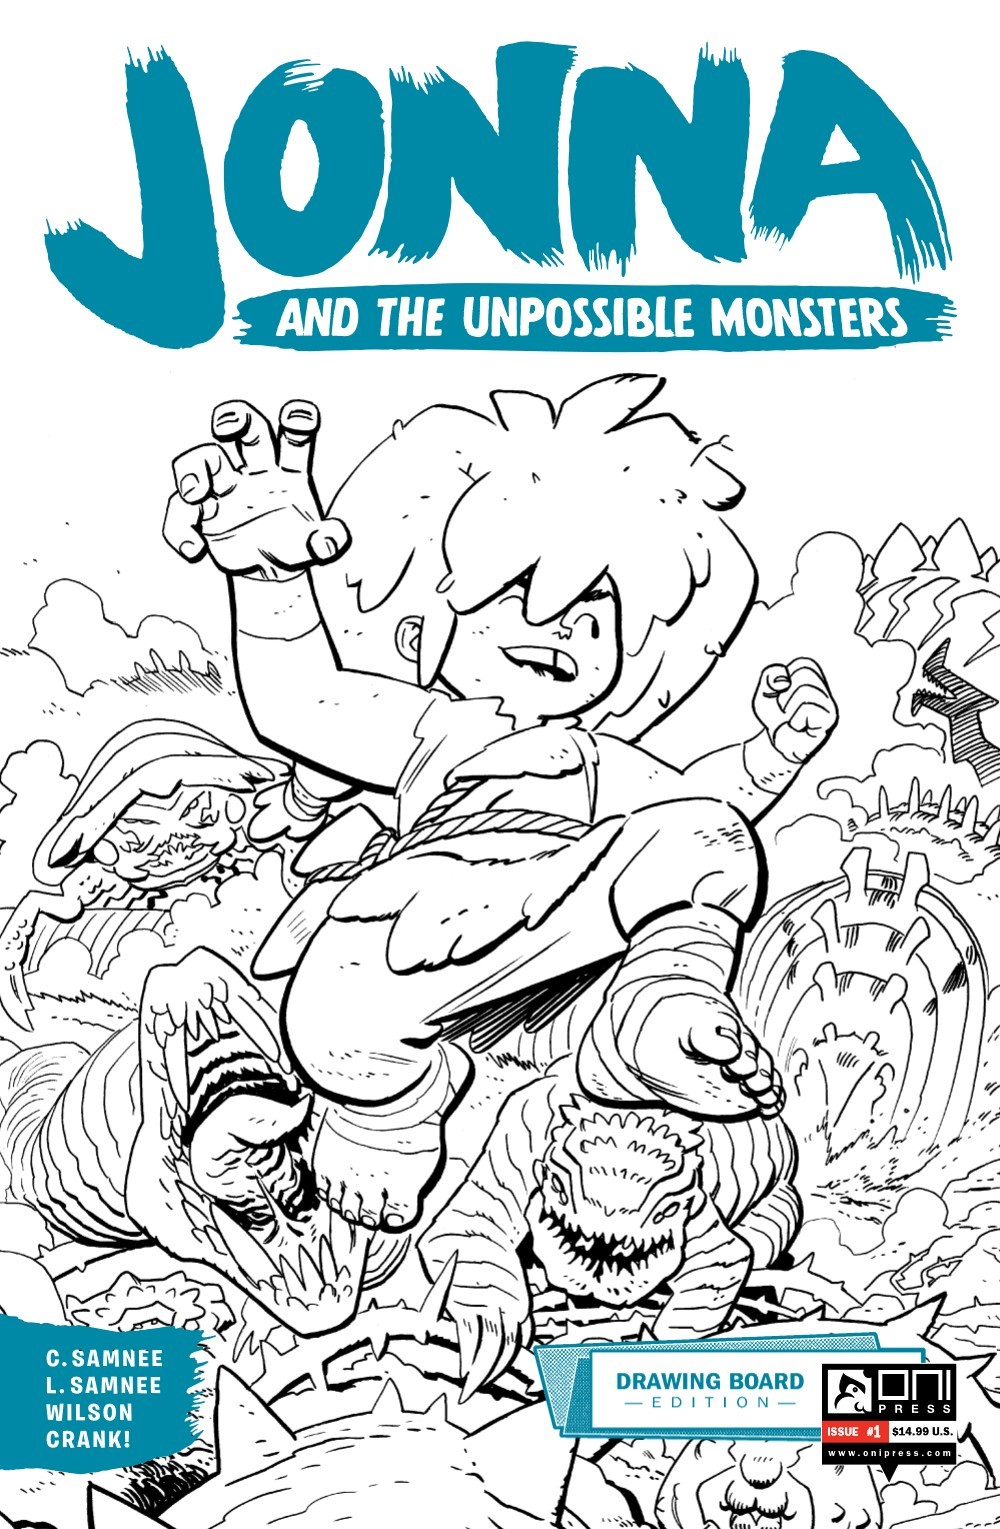 JONNA-1-DB-PGS-01-32-FNL-1-01 ComicList Previews: JONNA AND THE UNPOSSIBLE MONSTERS #1 (DRAWING BOARD EDITION)